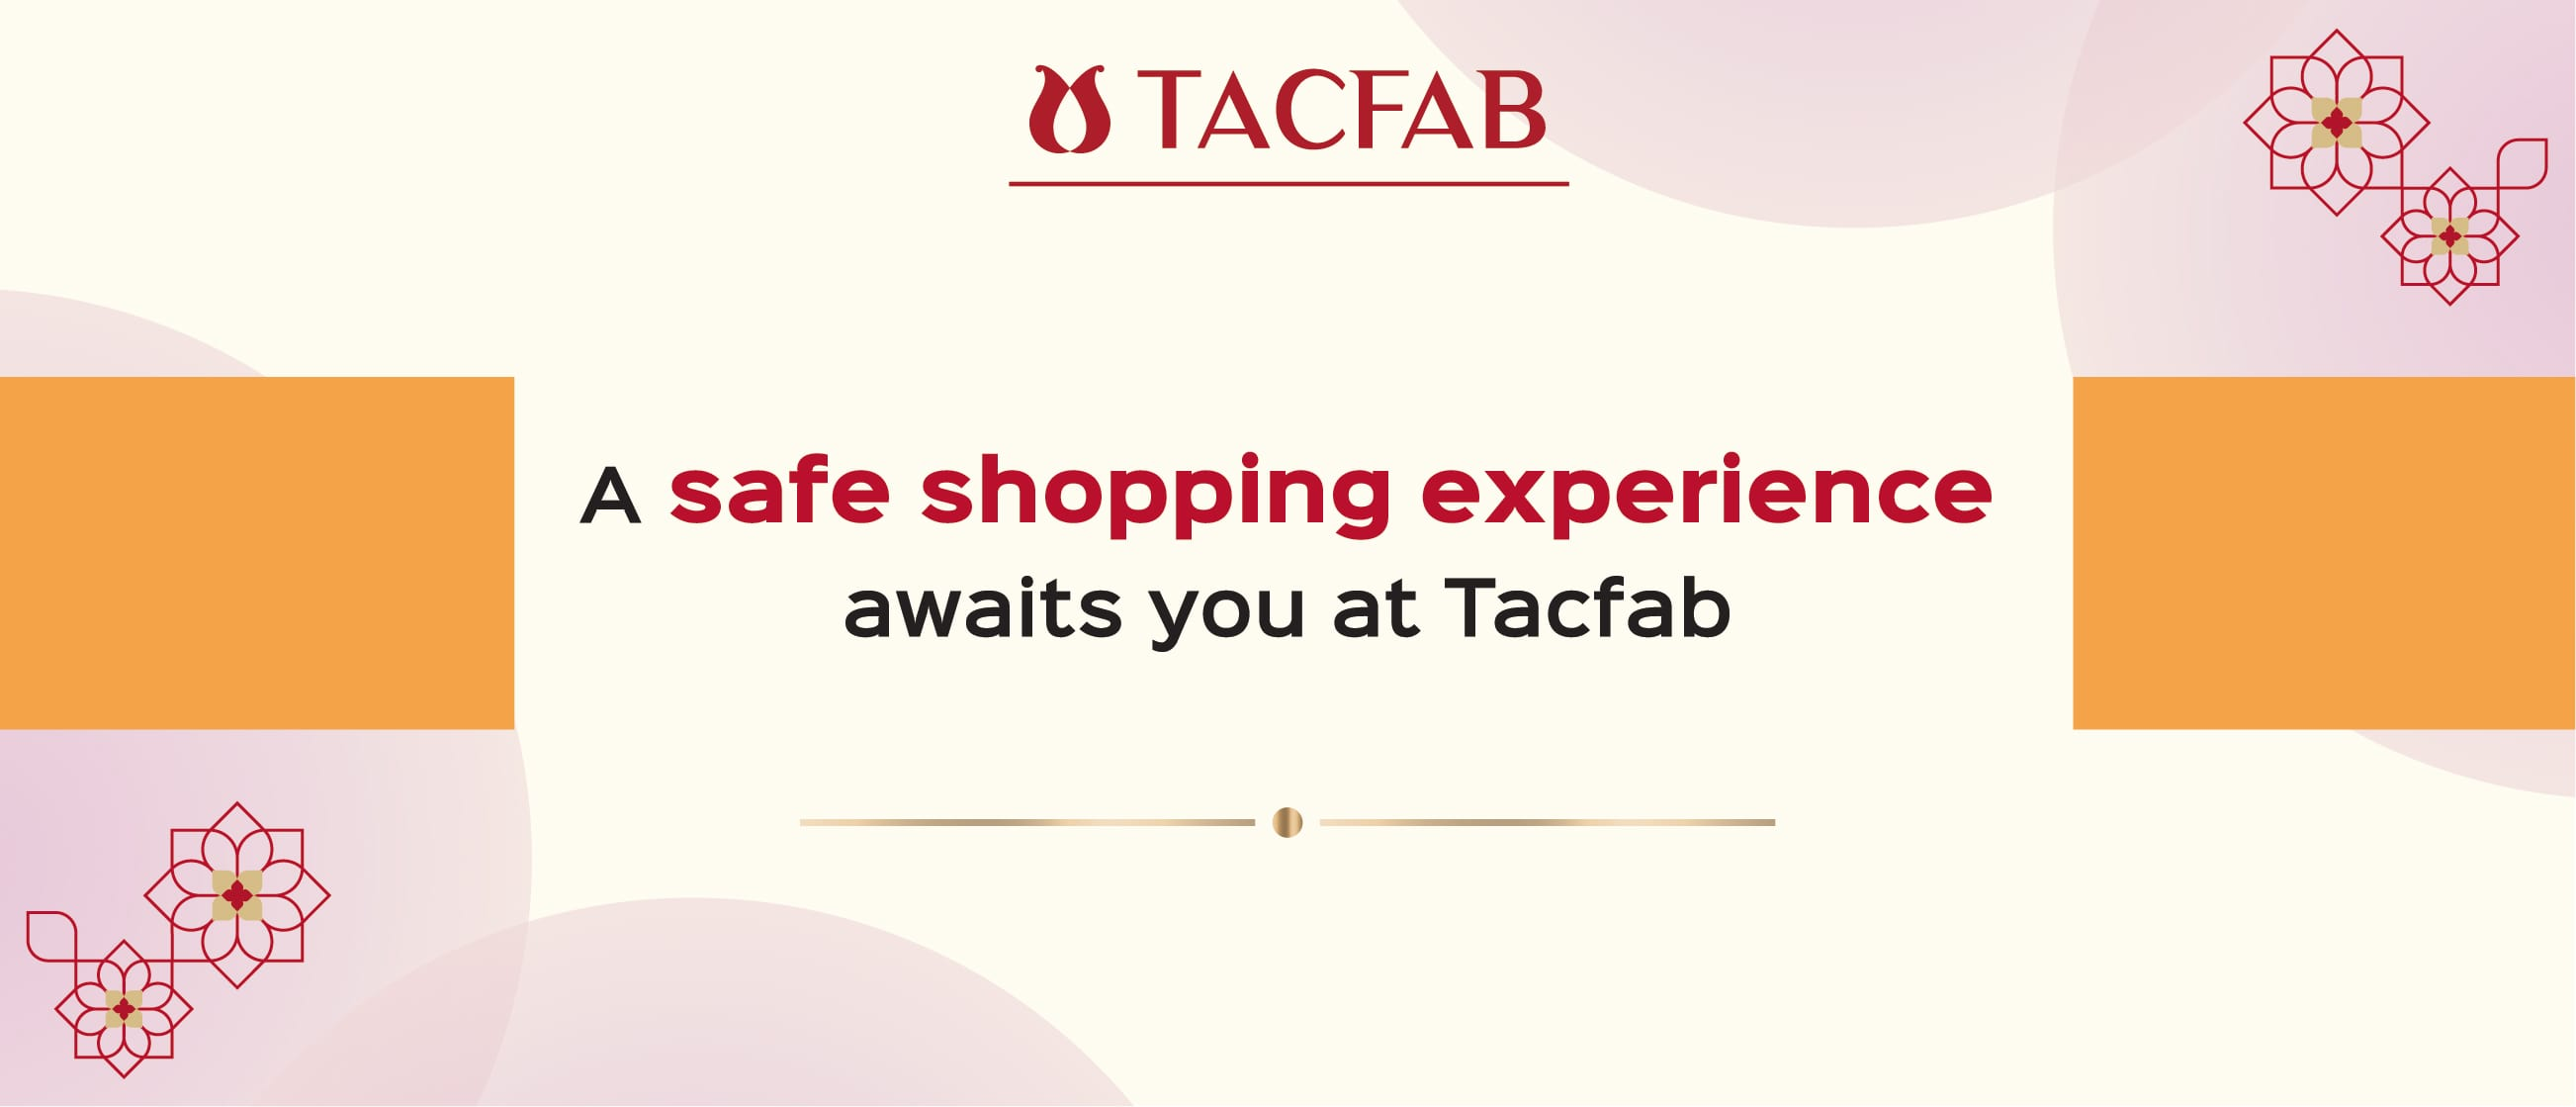 Tacfab All Set to Welcome You Back: Here's the Safety Checklist